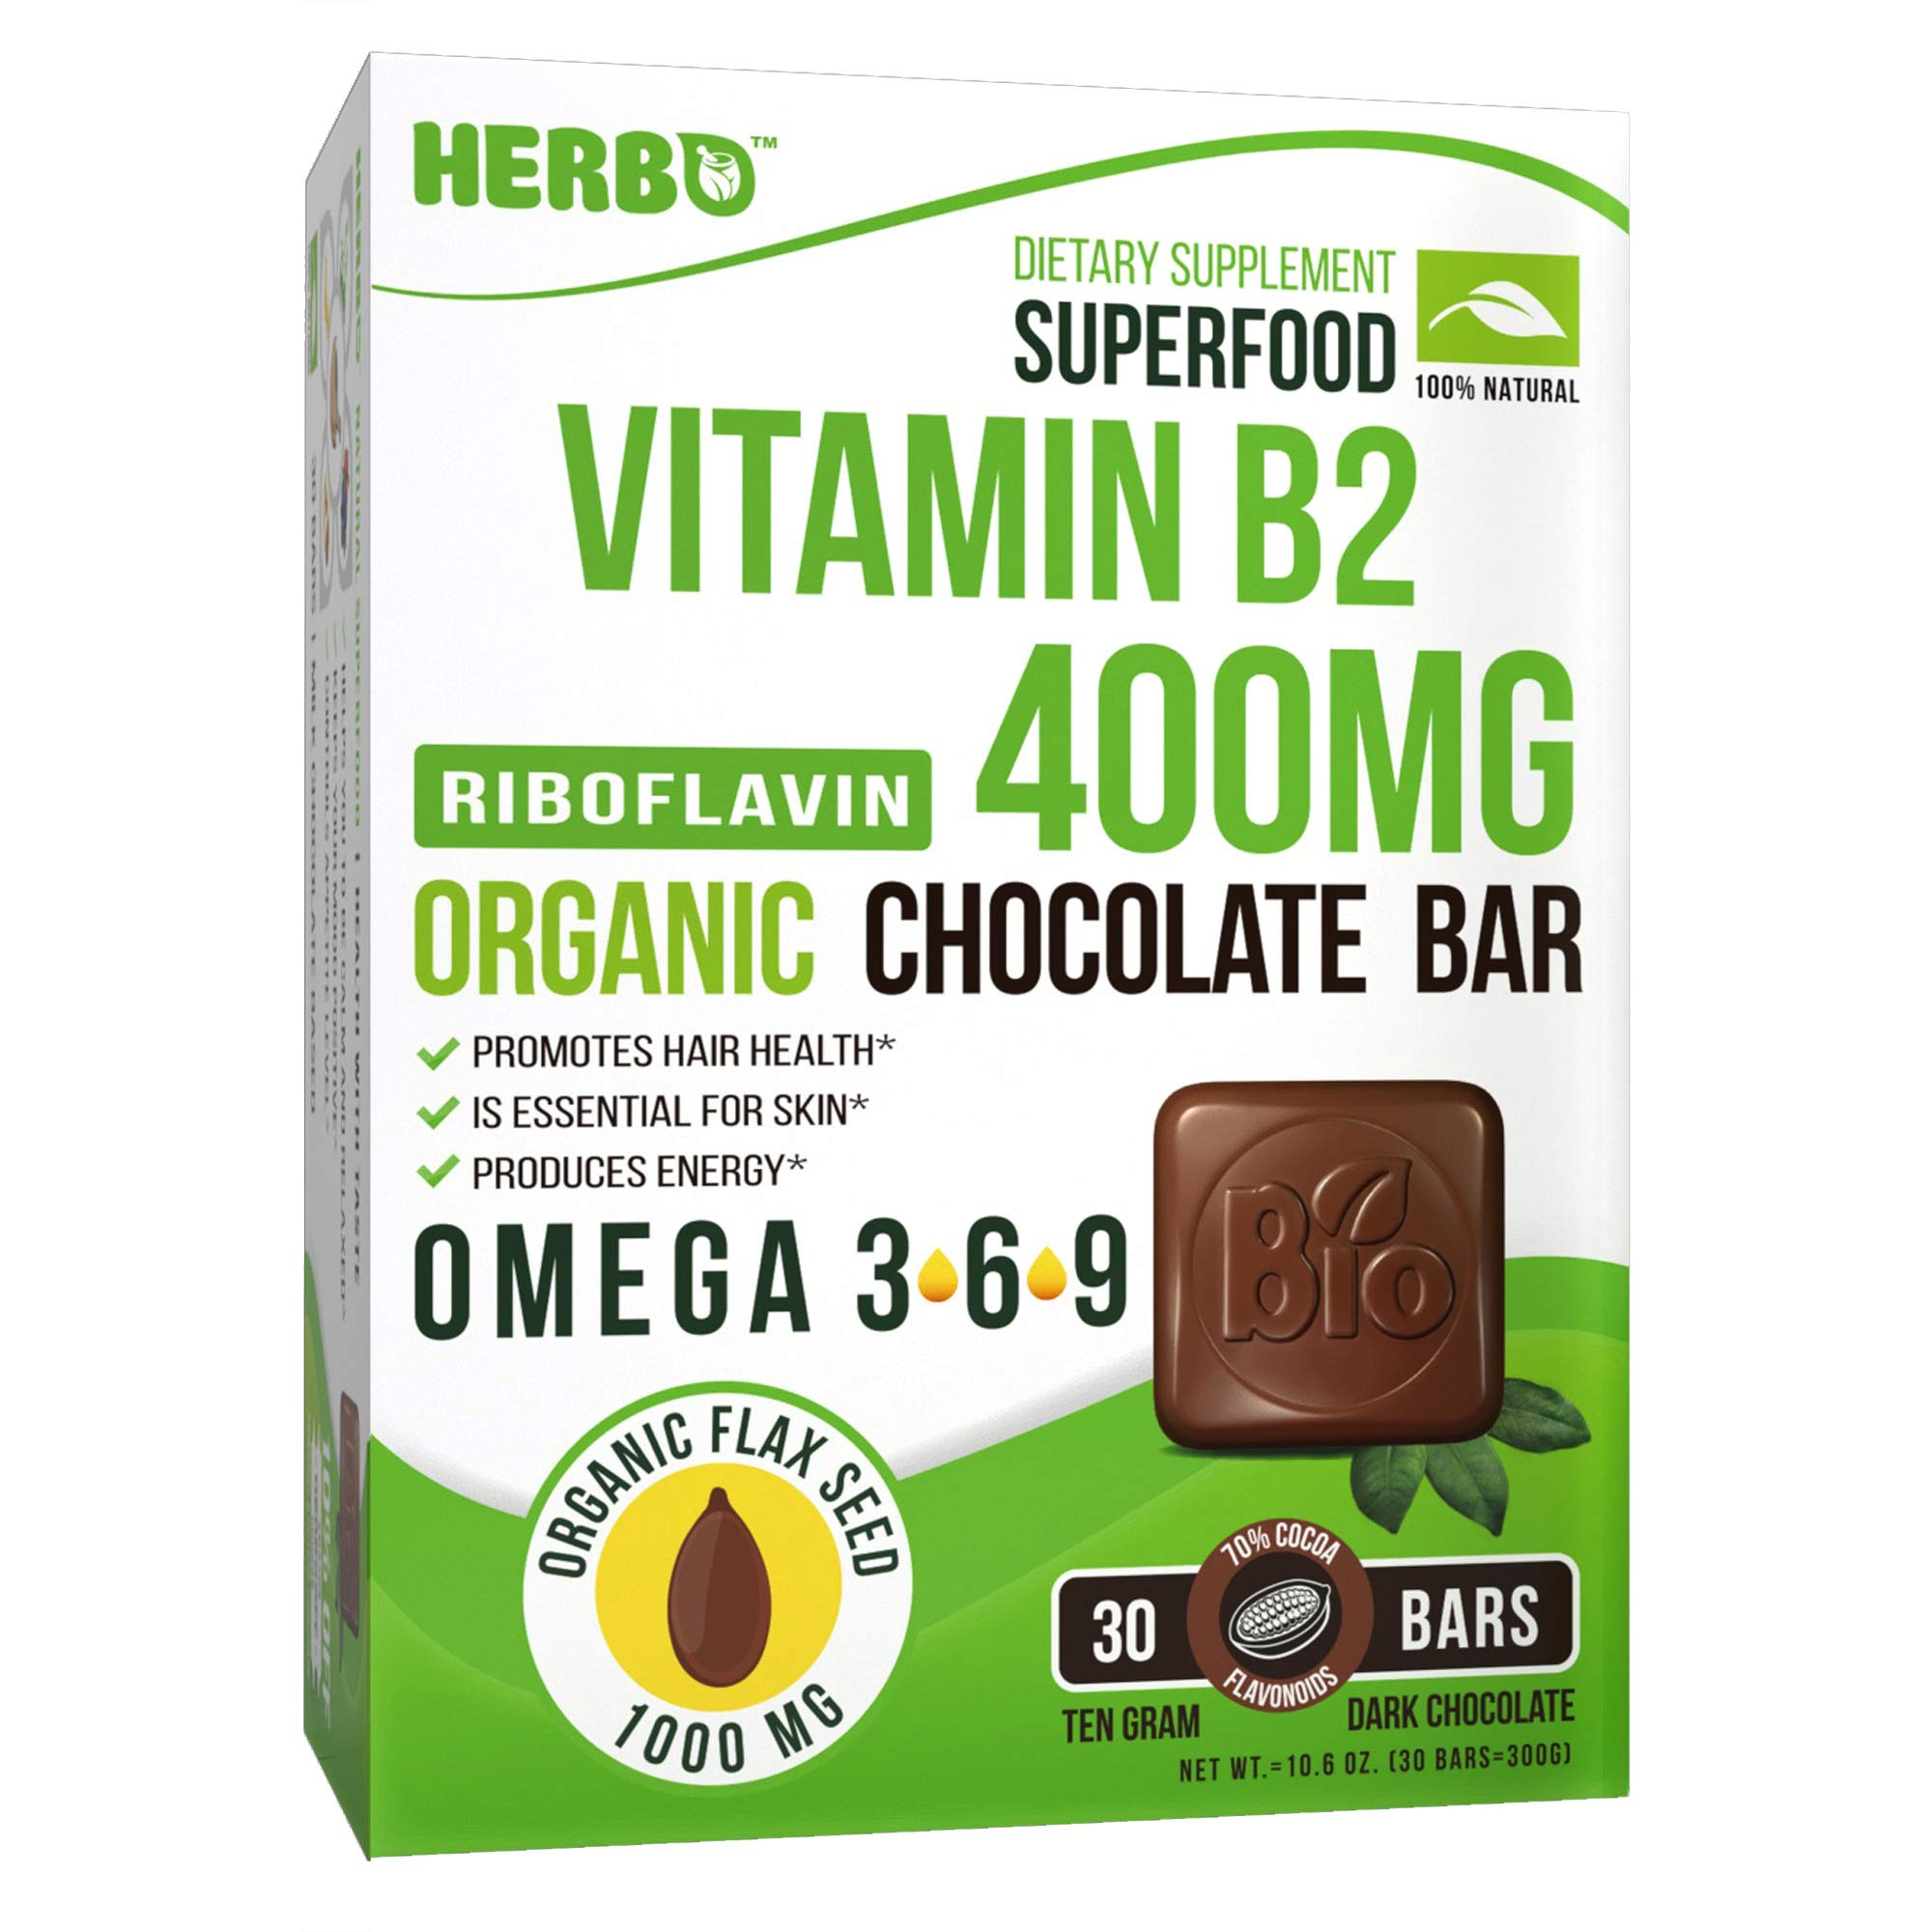 Herbo Superfood Vitamin B2 Riboflavin 400 mg Supplement in Organic Dark Chocolate - Increases Energy and Helps For Stress, Headaches & Migraines - 30 Bars With Omega 3 Non-GMO, Gluten Free, Dairy Free by HERBO SUPERFOOD